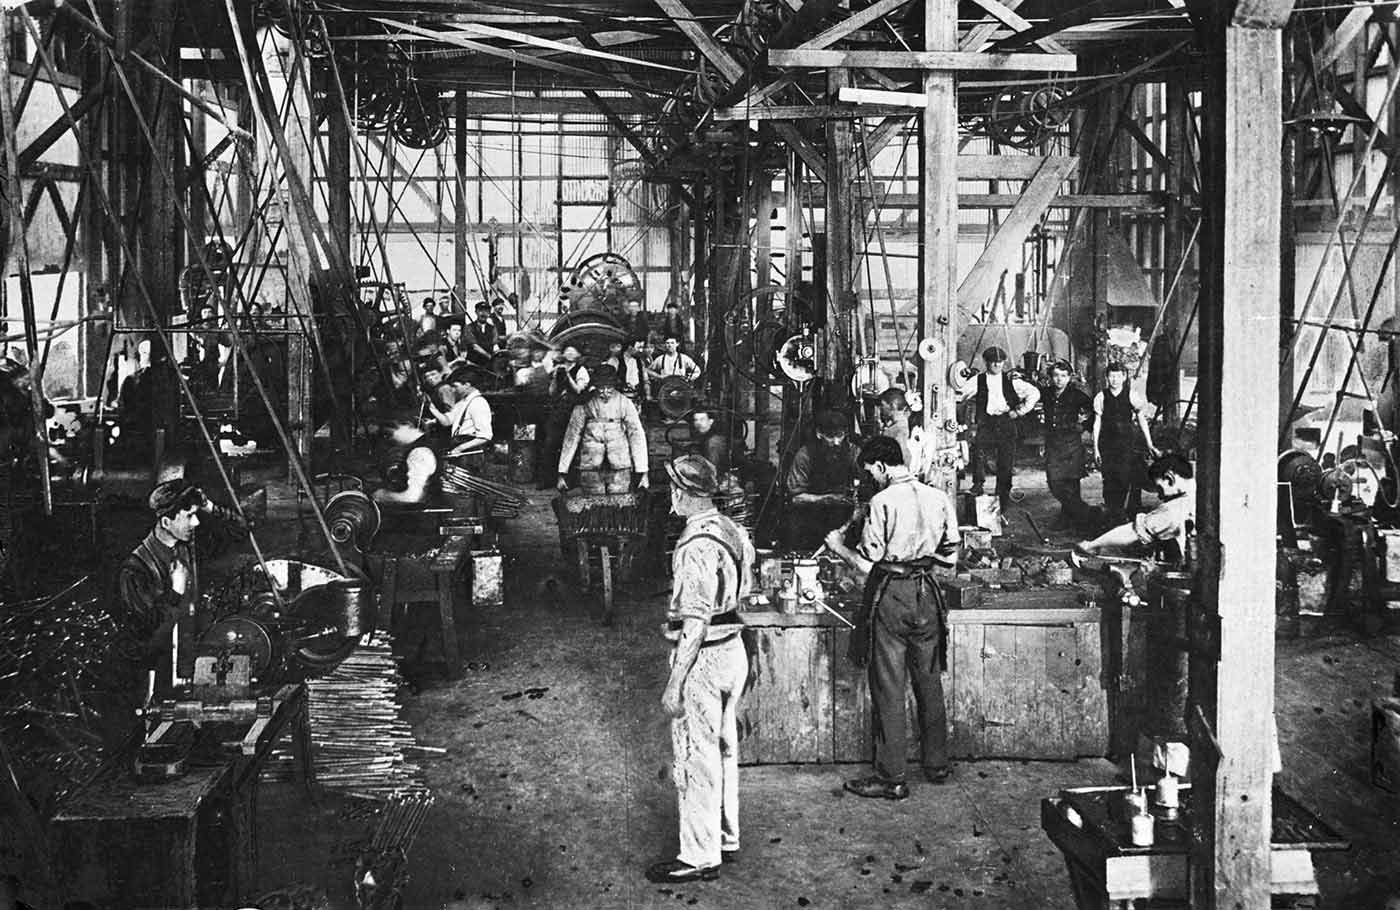 Black and white photo of men working in a factory.